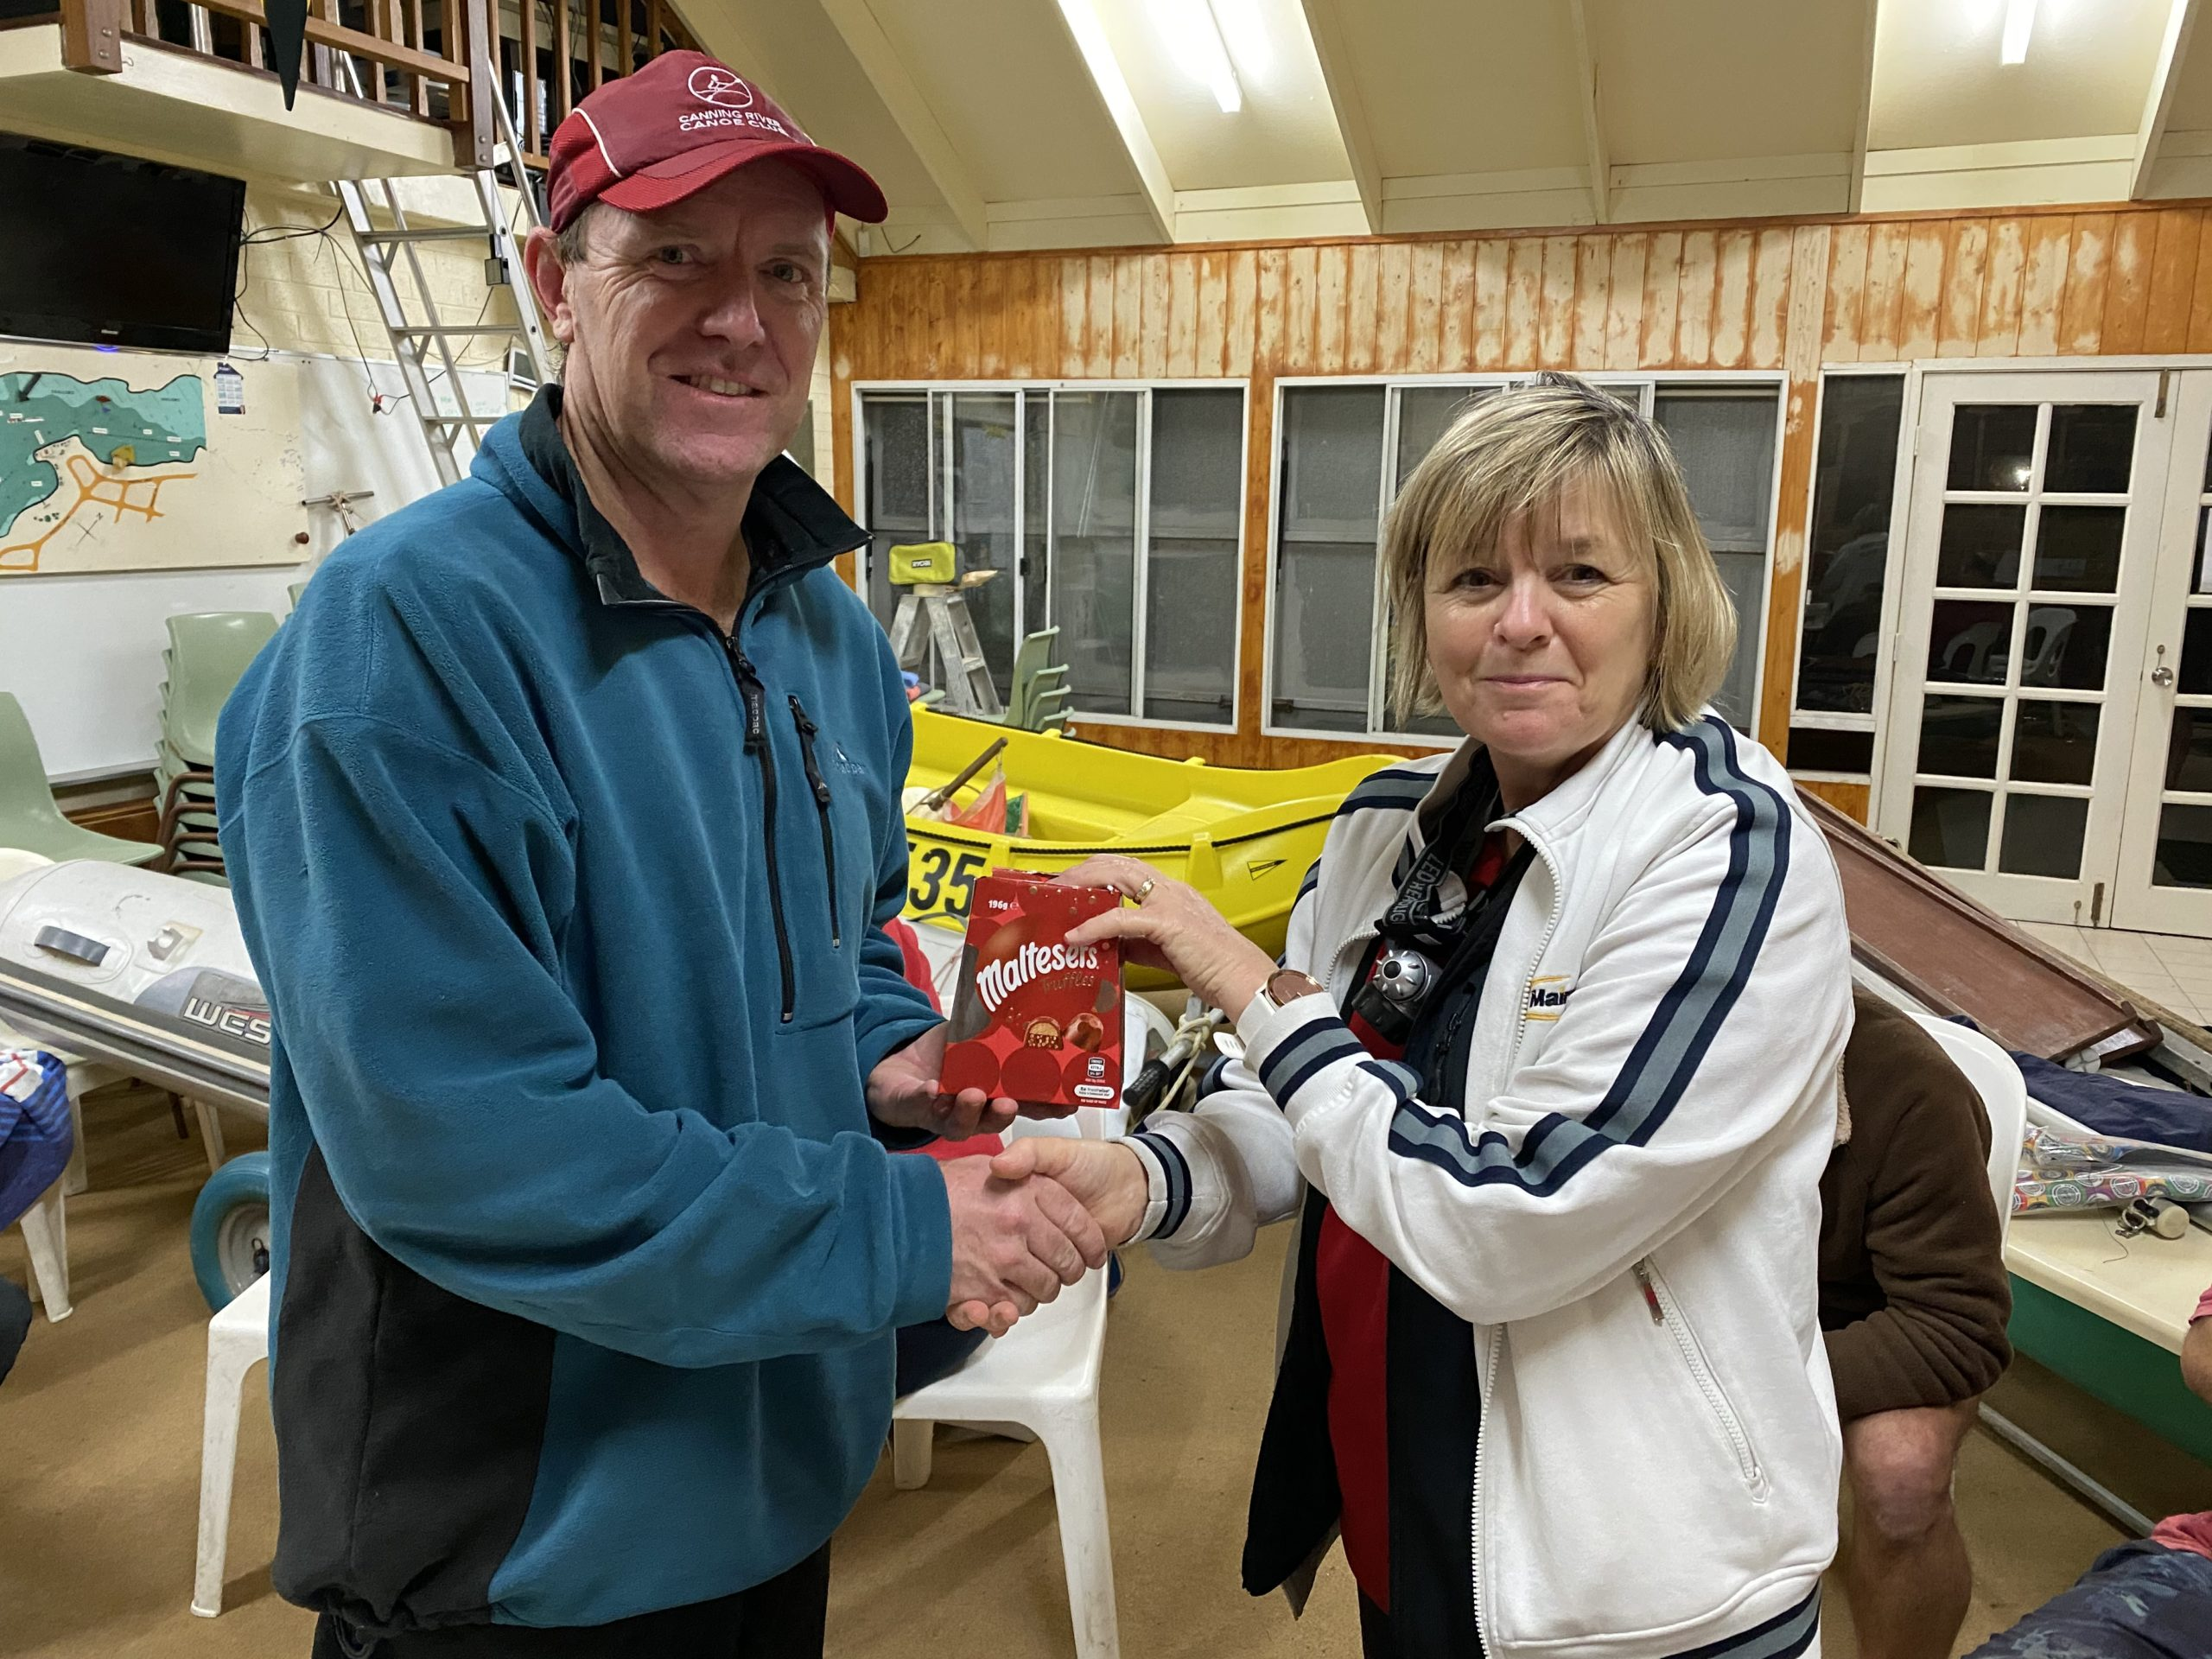 Tuesday 30th June 2020 : Tonight's photos shows club Secretary Judith Thompson presenting Simon O'Sullivan with a movie voucher.